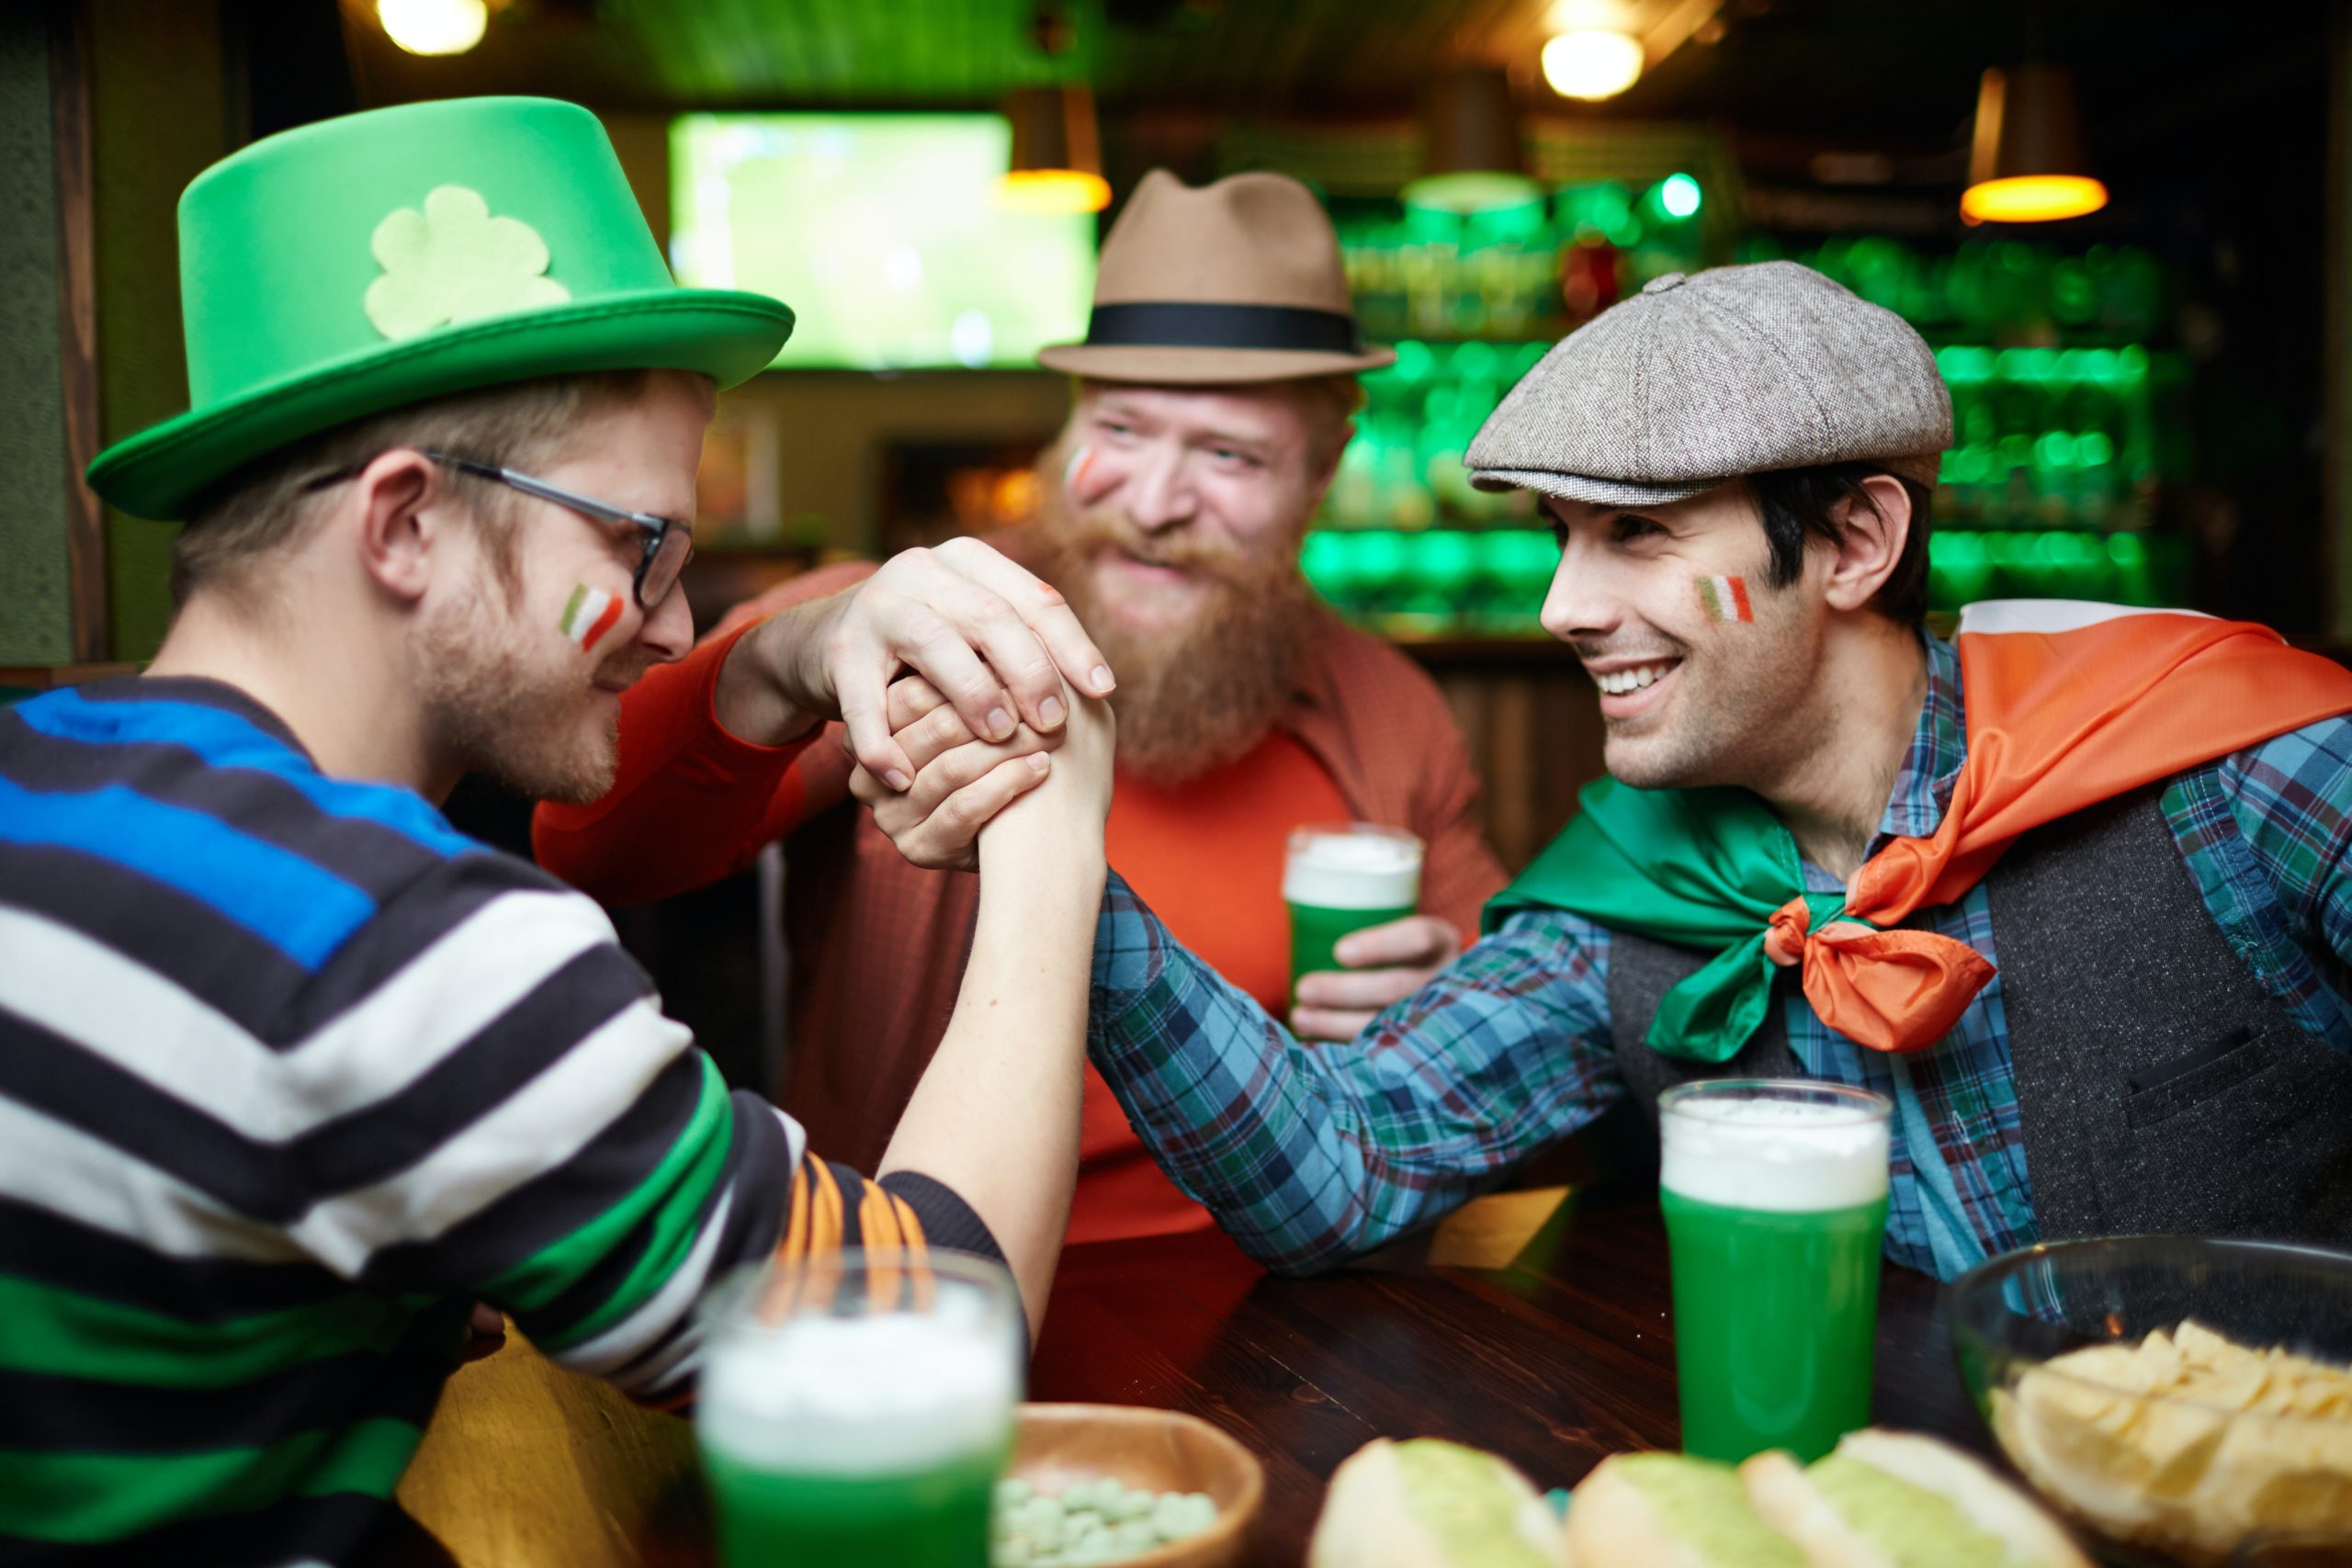 4 Ways To Have A Posh St. Patrick's Day Party